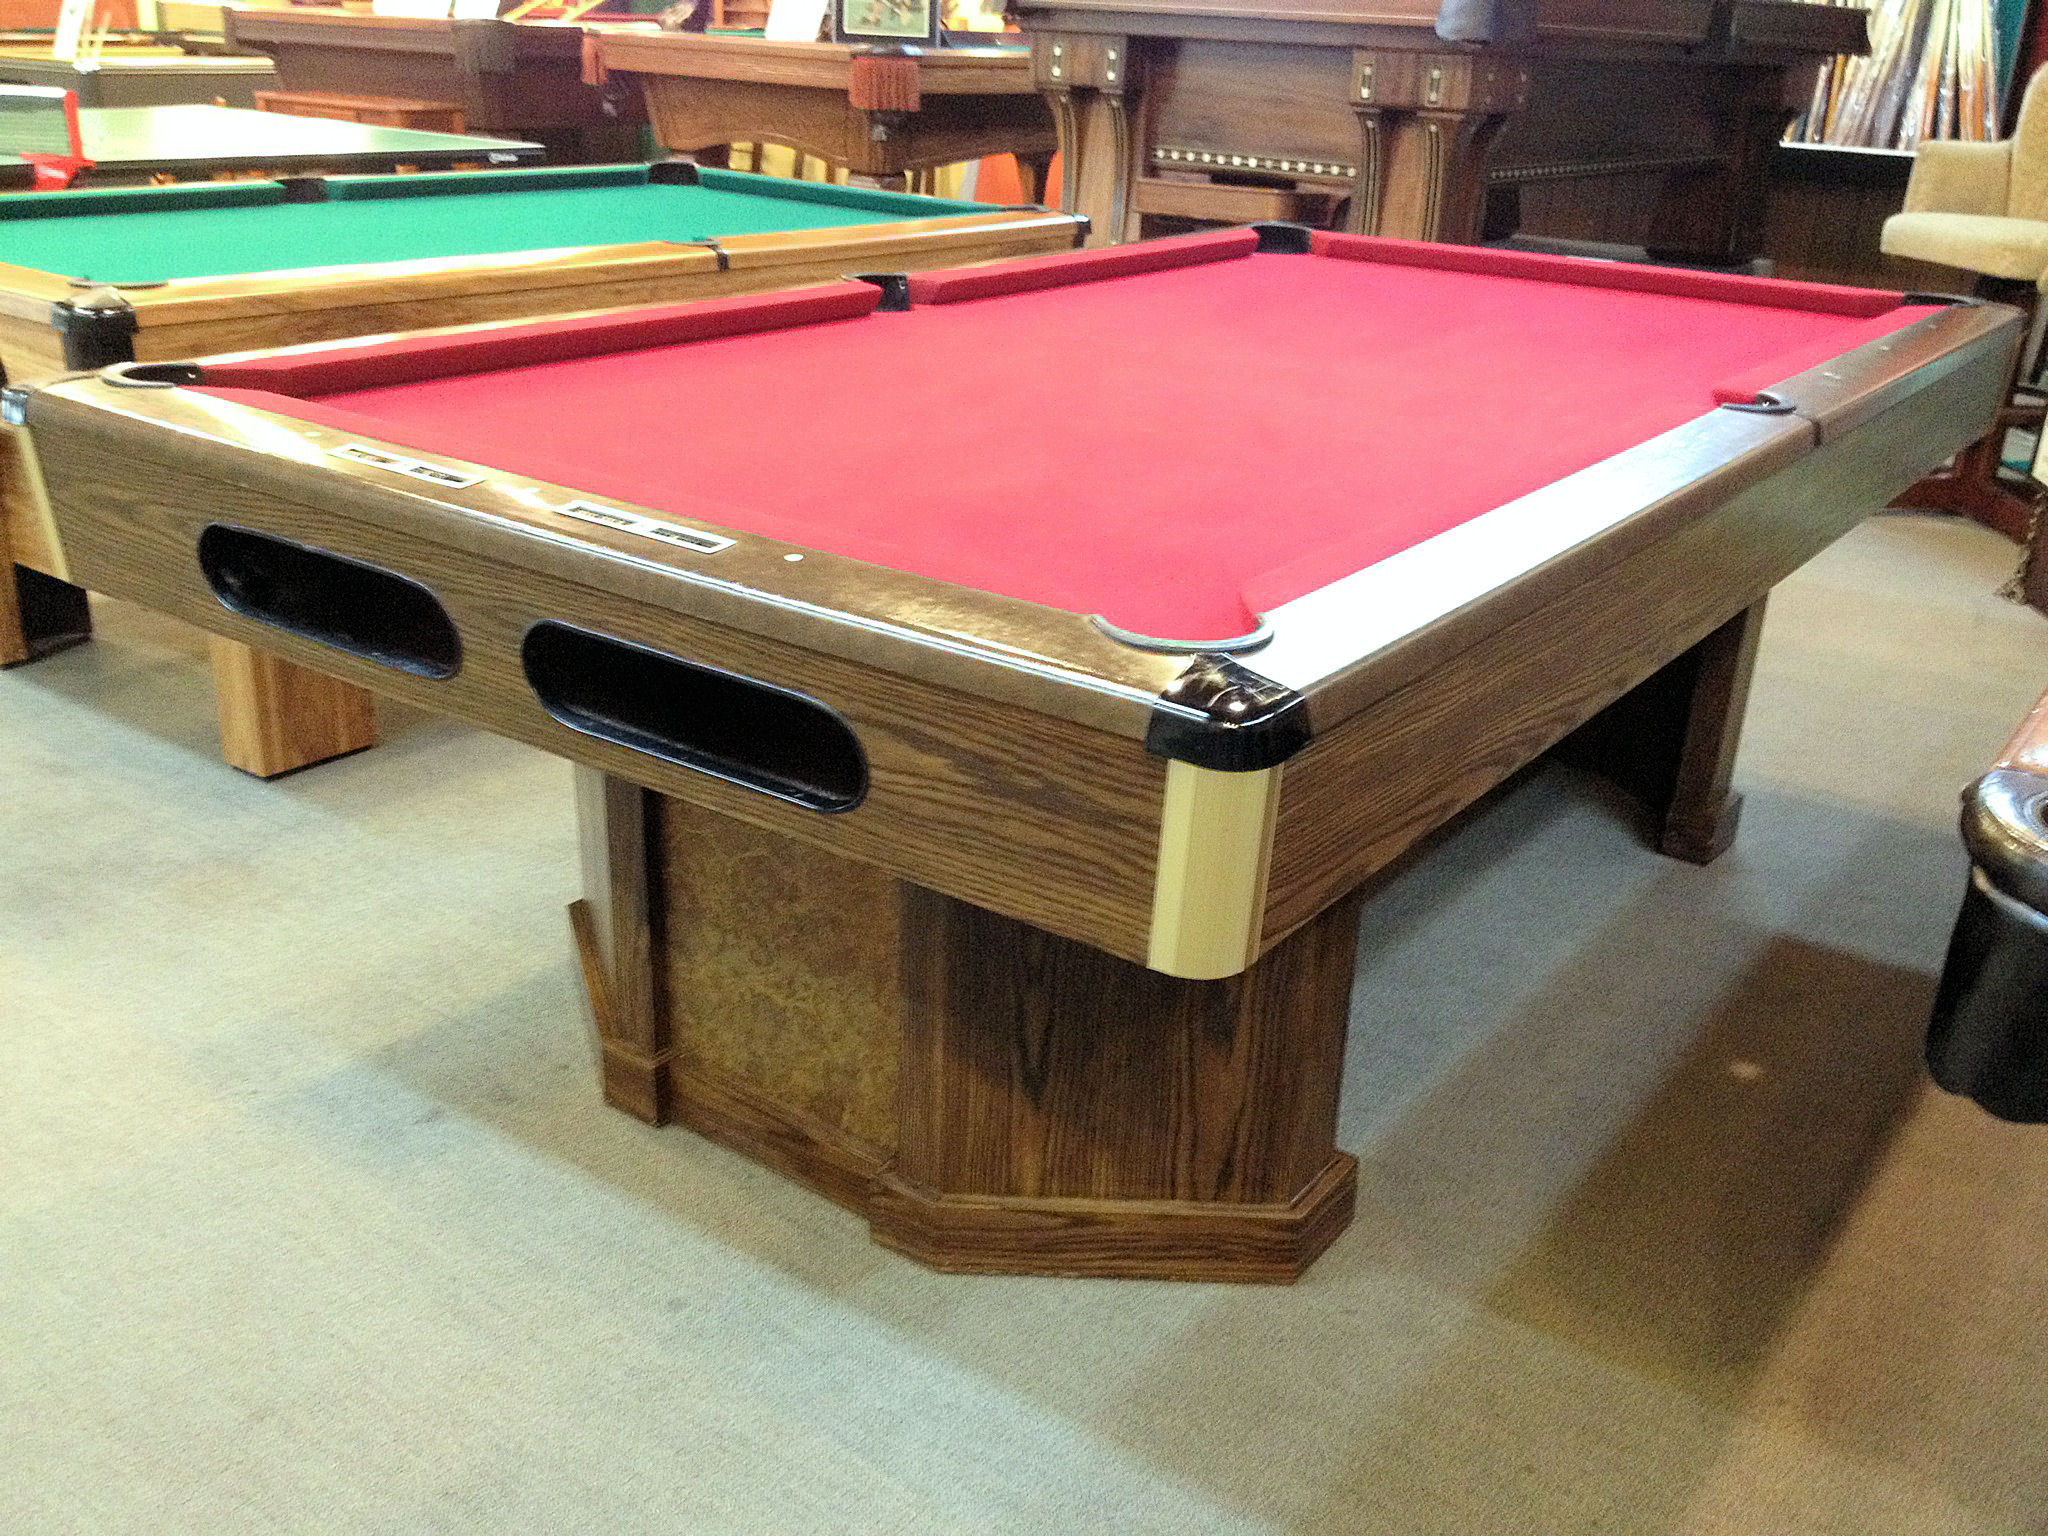 SOLD PreOwned Brunswick Anniversary Ft Pool Table Loria - Brunswick anniversary pool table for sale